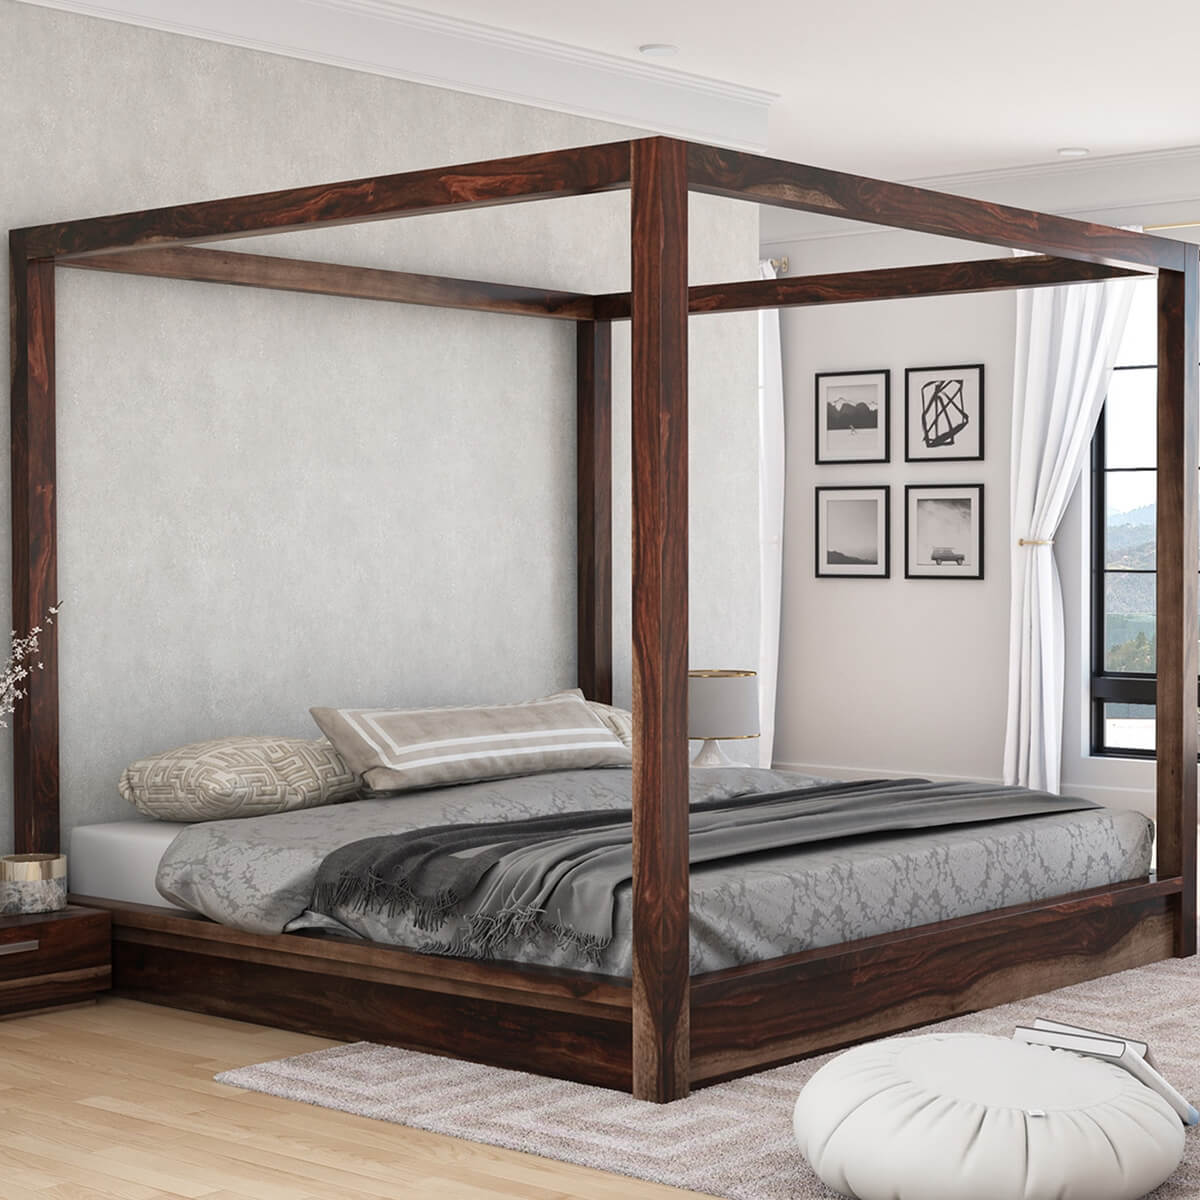 Brand new Hampshire Solid Wood Contemporary Platform Canopy Bed BU47